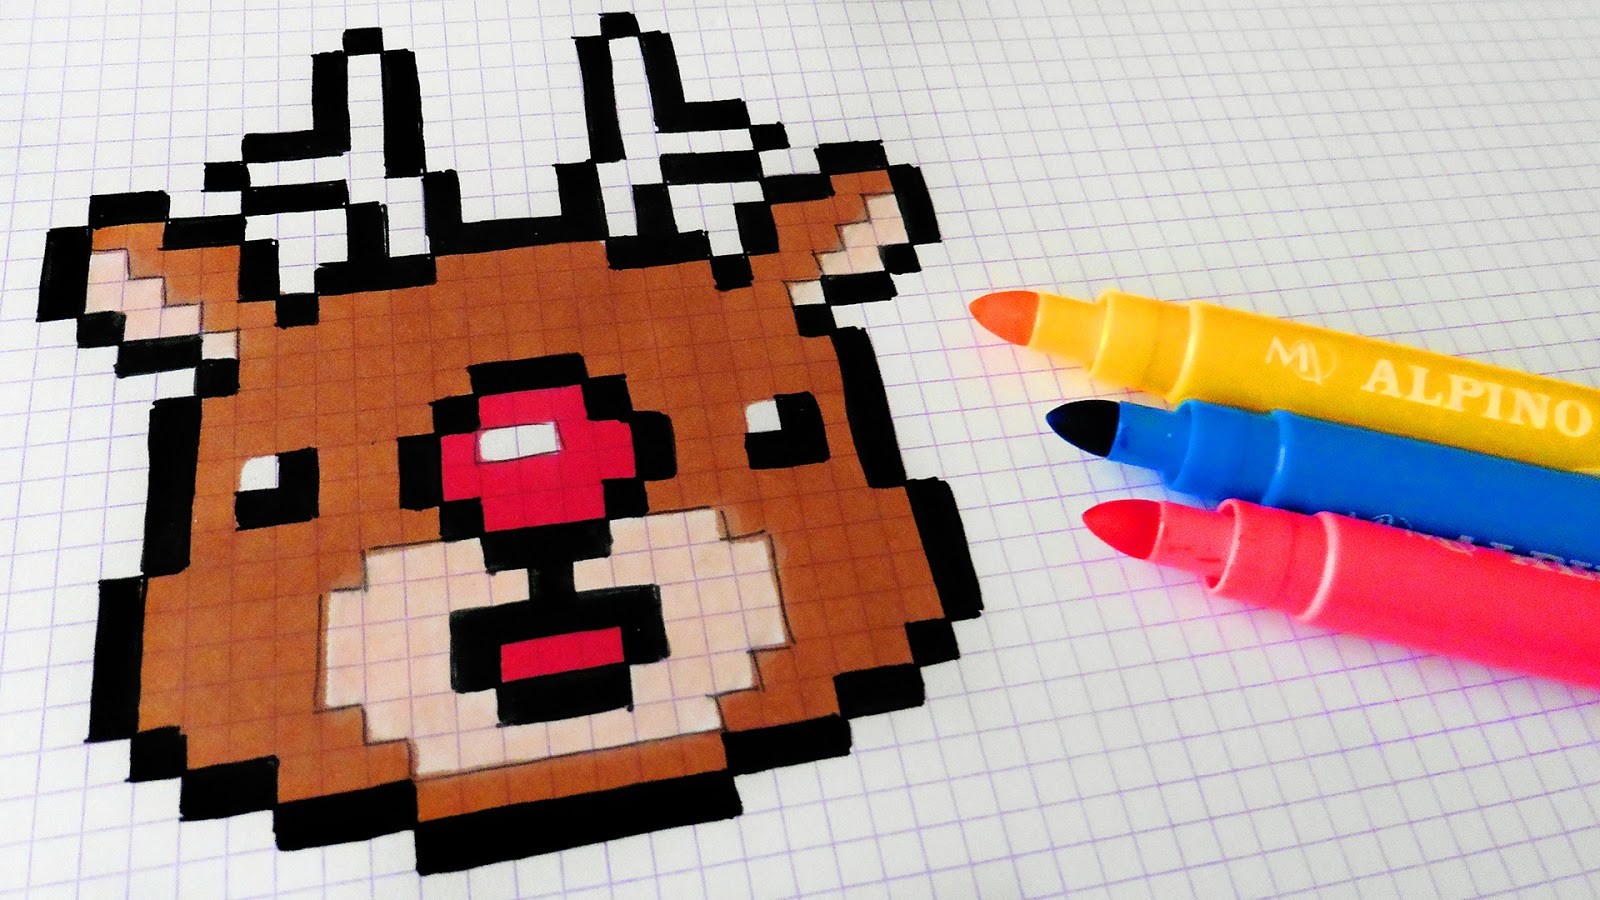 how to draw pixel art in photoshop